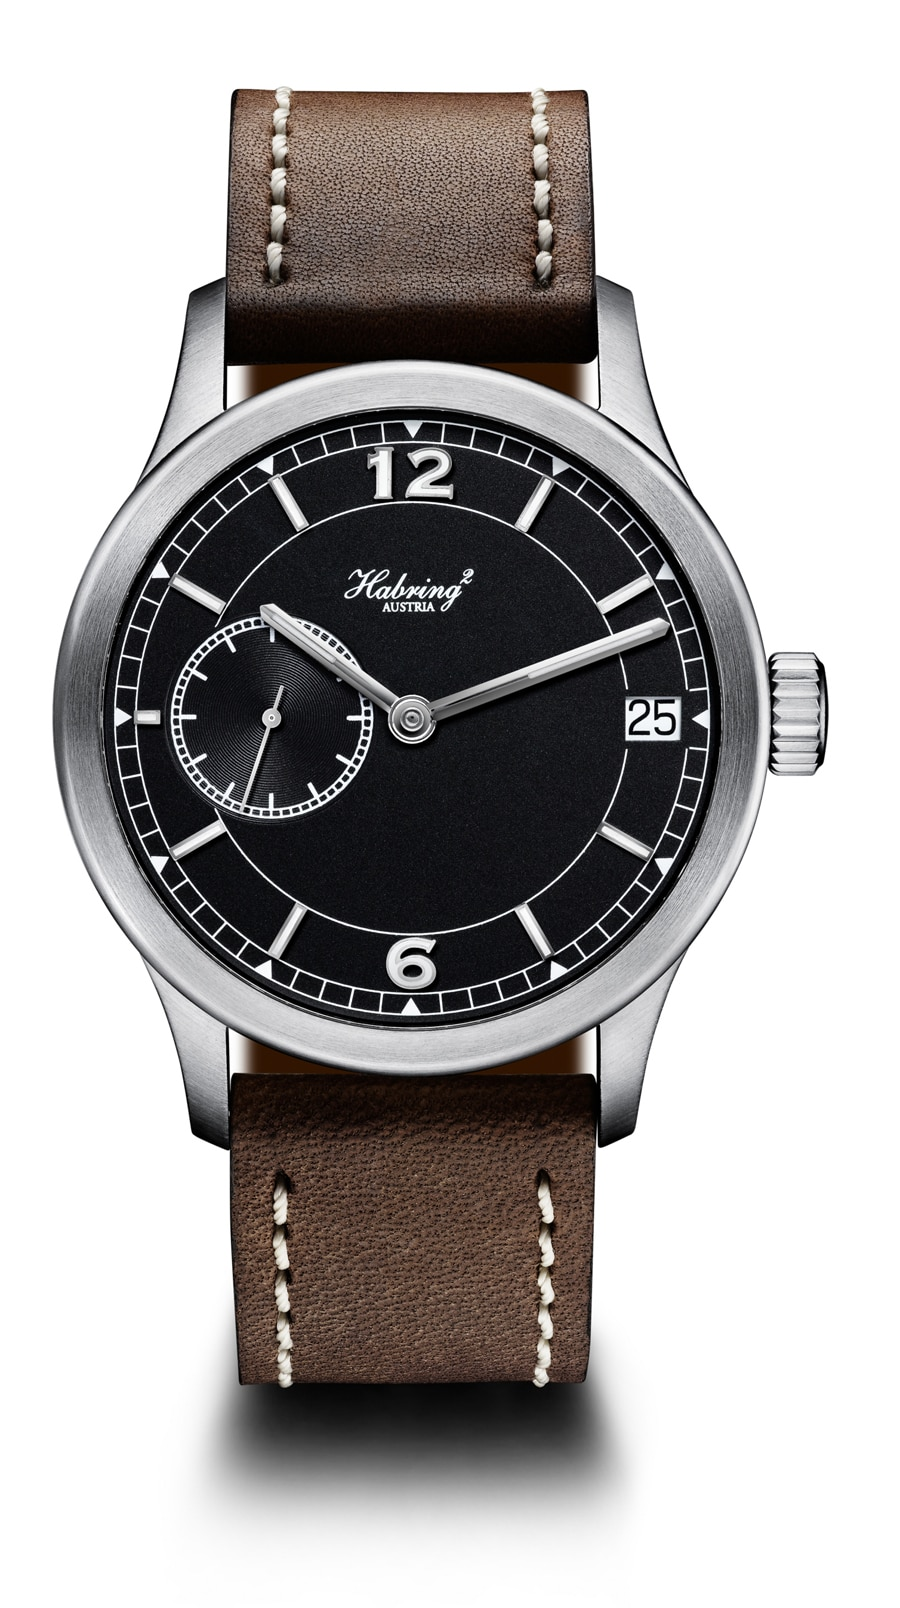 Habring²: Time Date Pilot